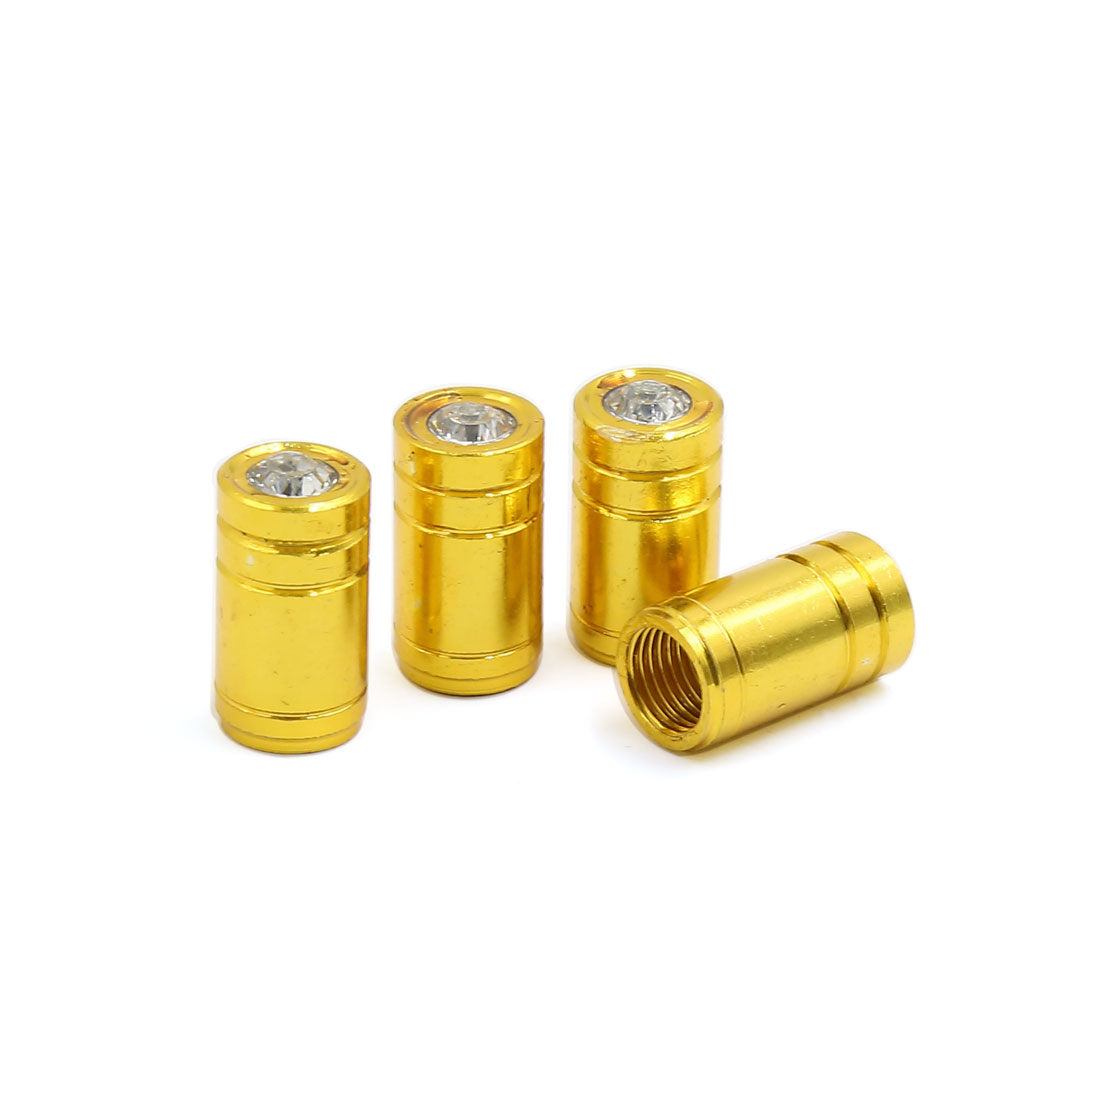 4 Pcs Gold Tone Car Tyre Tire Wheel Valve Stems Air Dust Cover Cap 19mm x 10mm